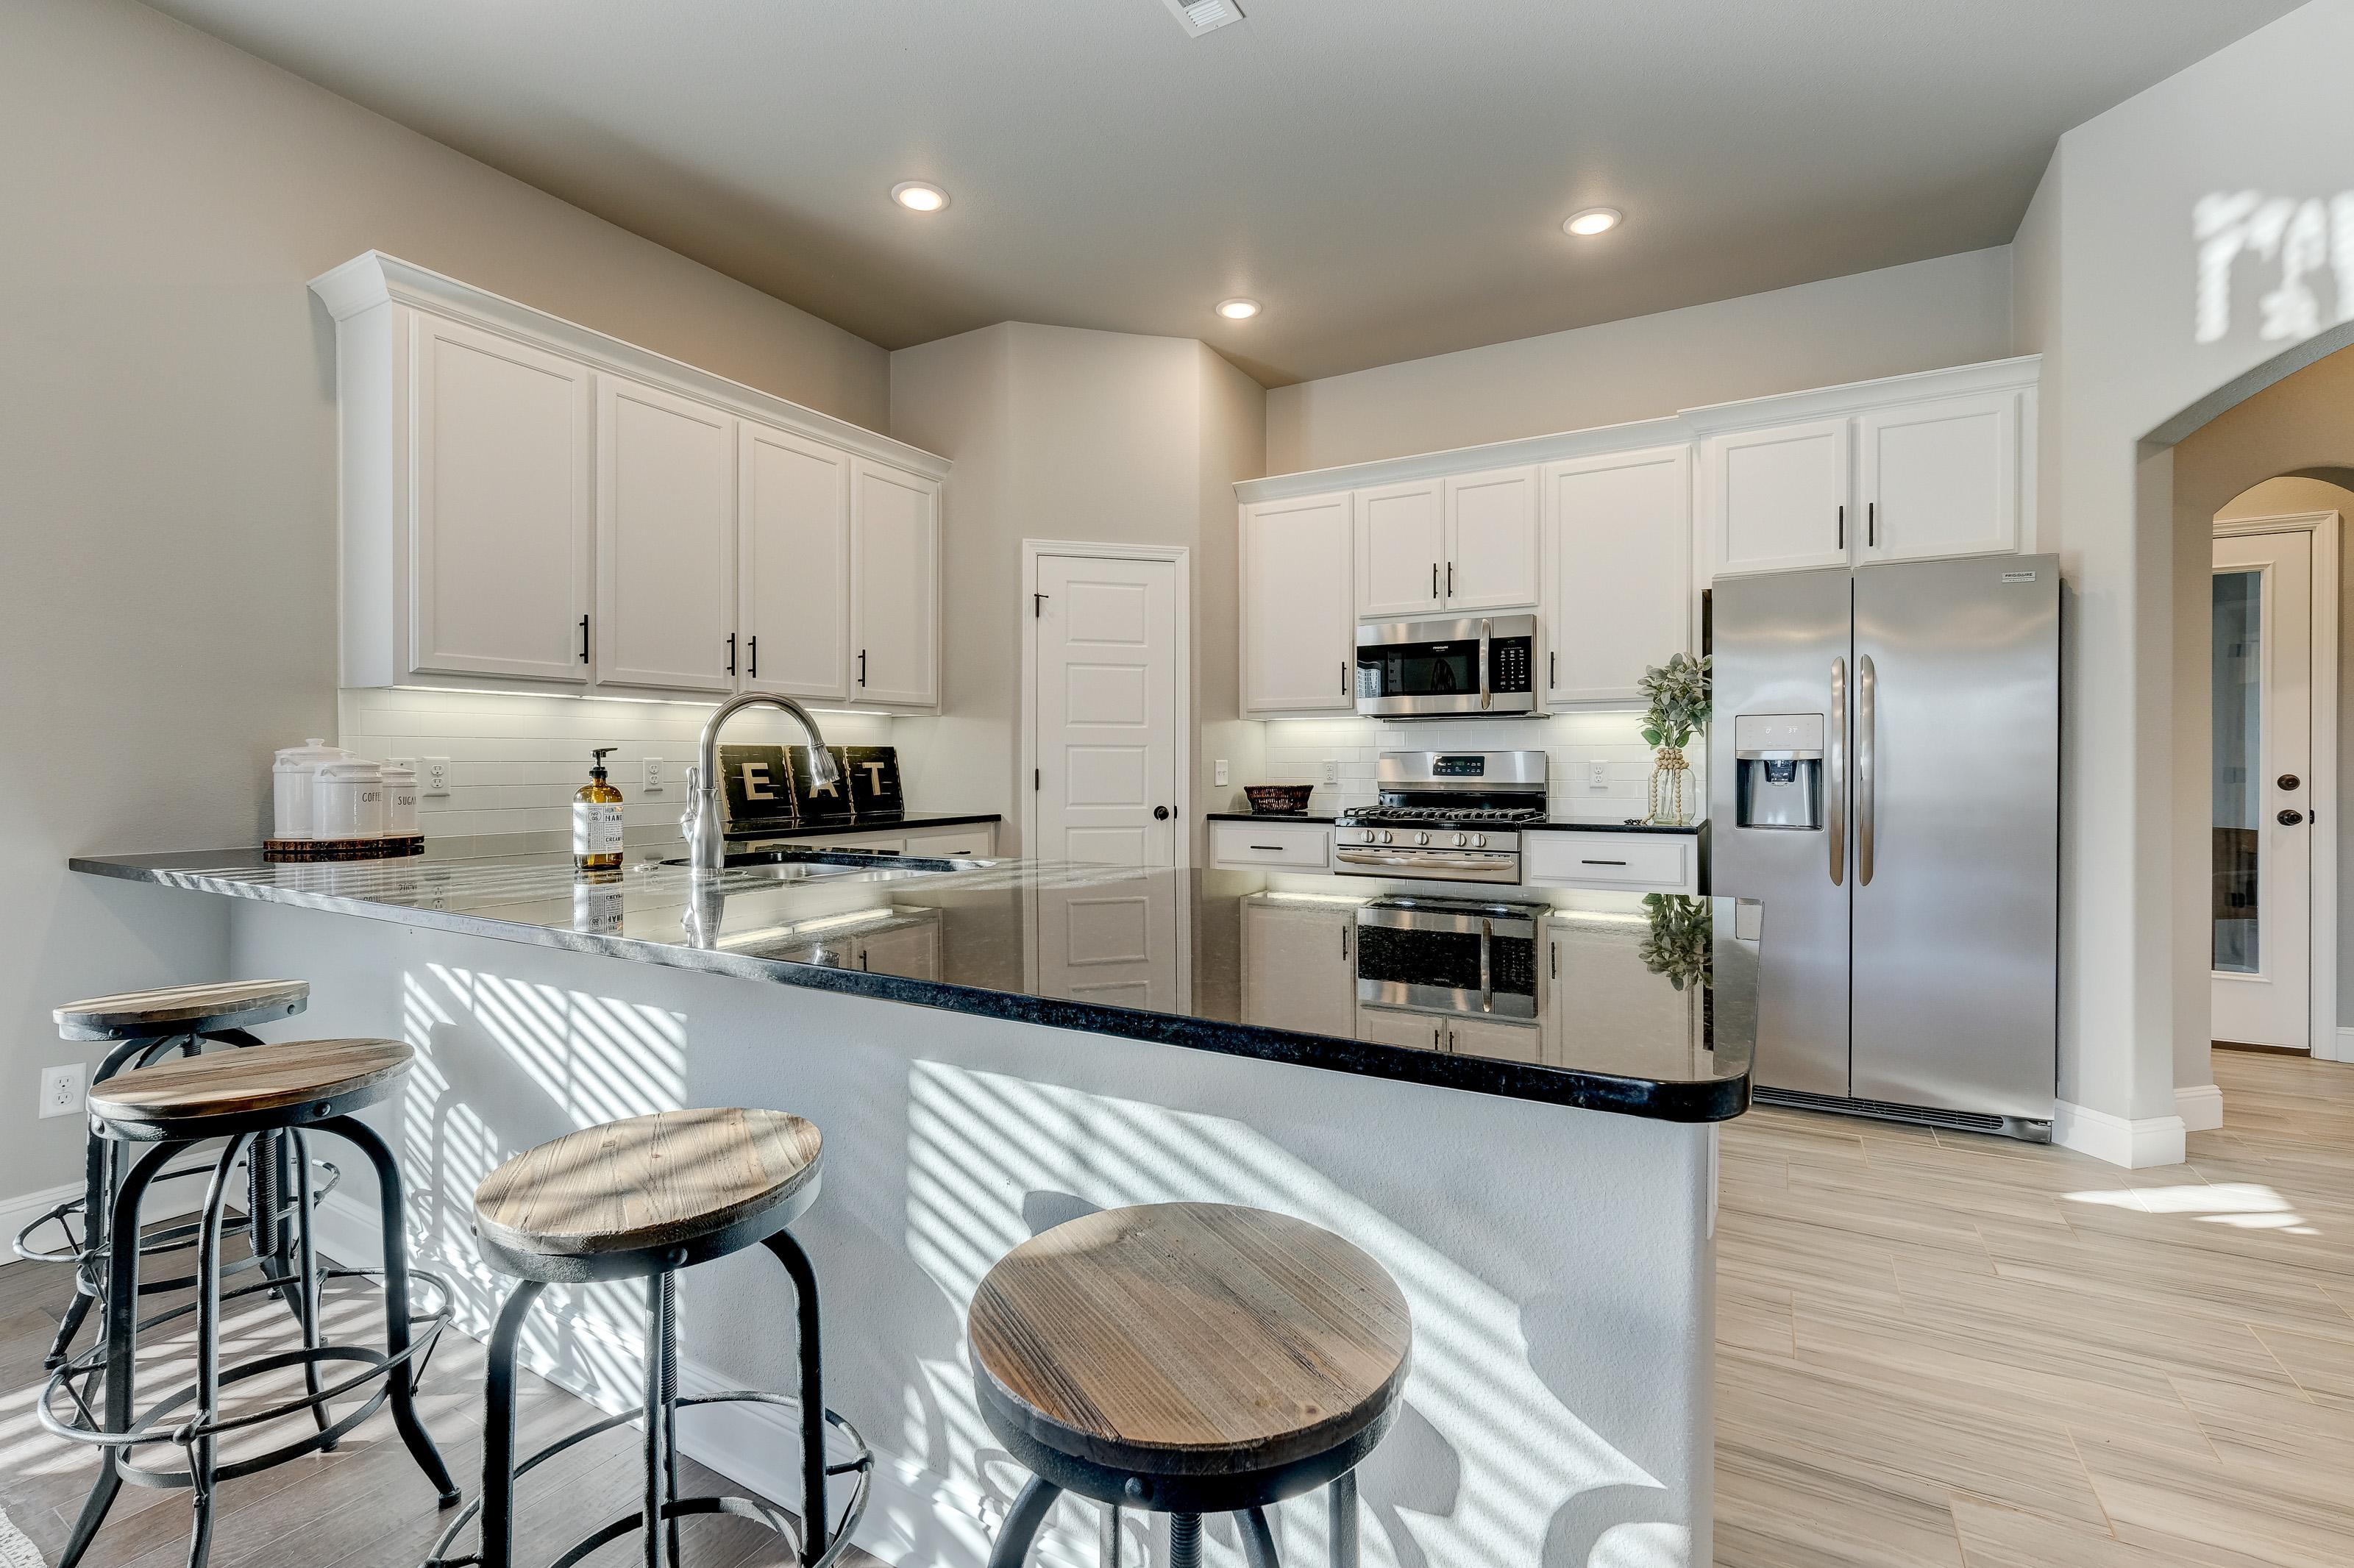 Kitchen featured in the 2050KP Series By Schuber Mitchell Homes in Fayetteville, AR